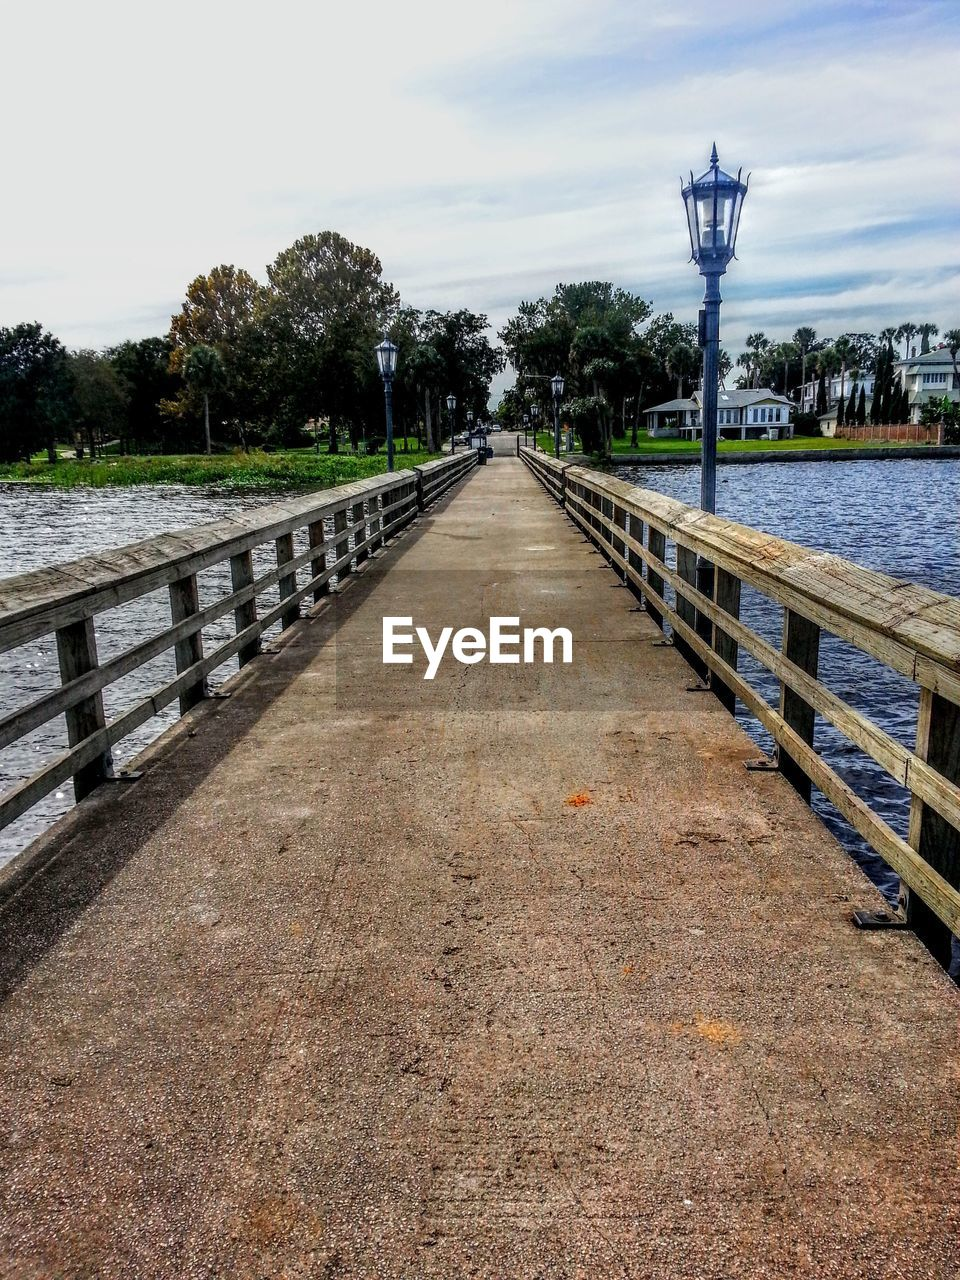 sky, the way forward, direction, nature, water, diminishing perspective, railing, plant, transportation, no people, built structure, tree, day, connection, architecture, cloud - sky, vanishing point, footpath, outdoors, long